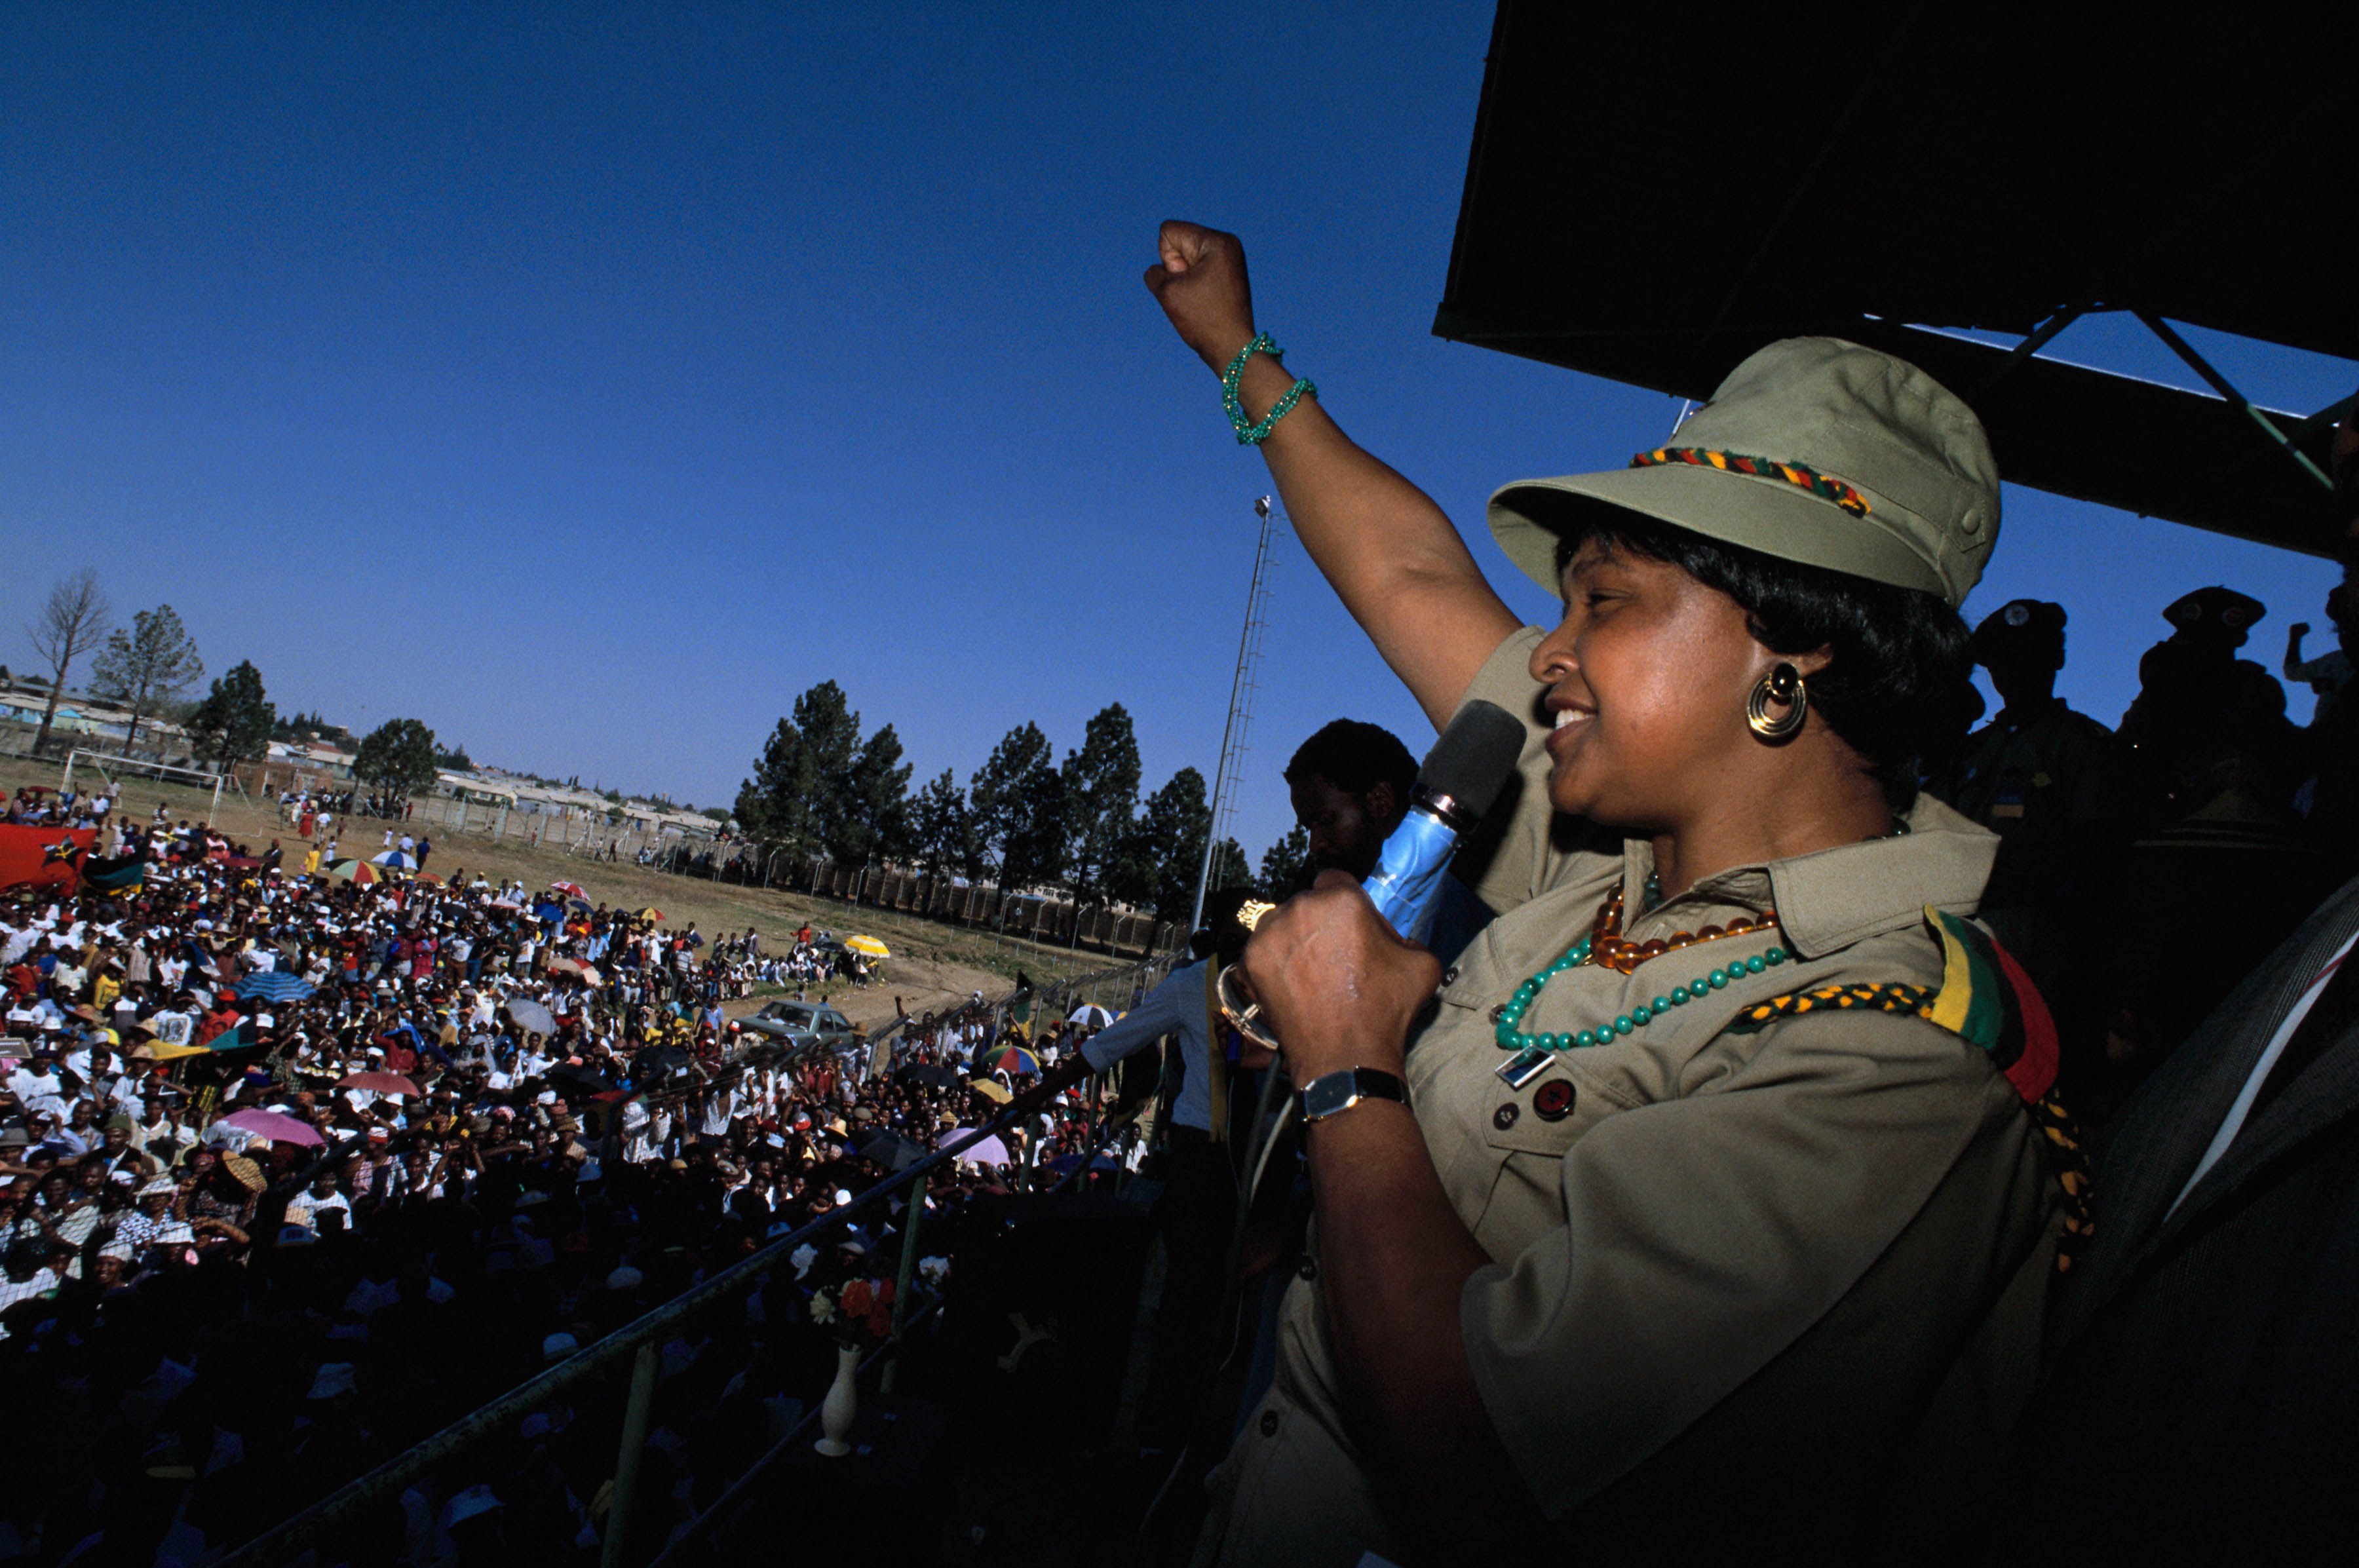 1990: Winnie Madikizela-Mandela at an ANC rally in Soweto, Johannesburg. (Photograph by Gideon Mendel/Corbis via Getty Images)